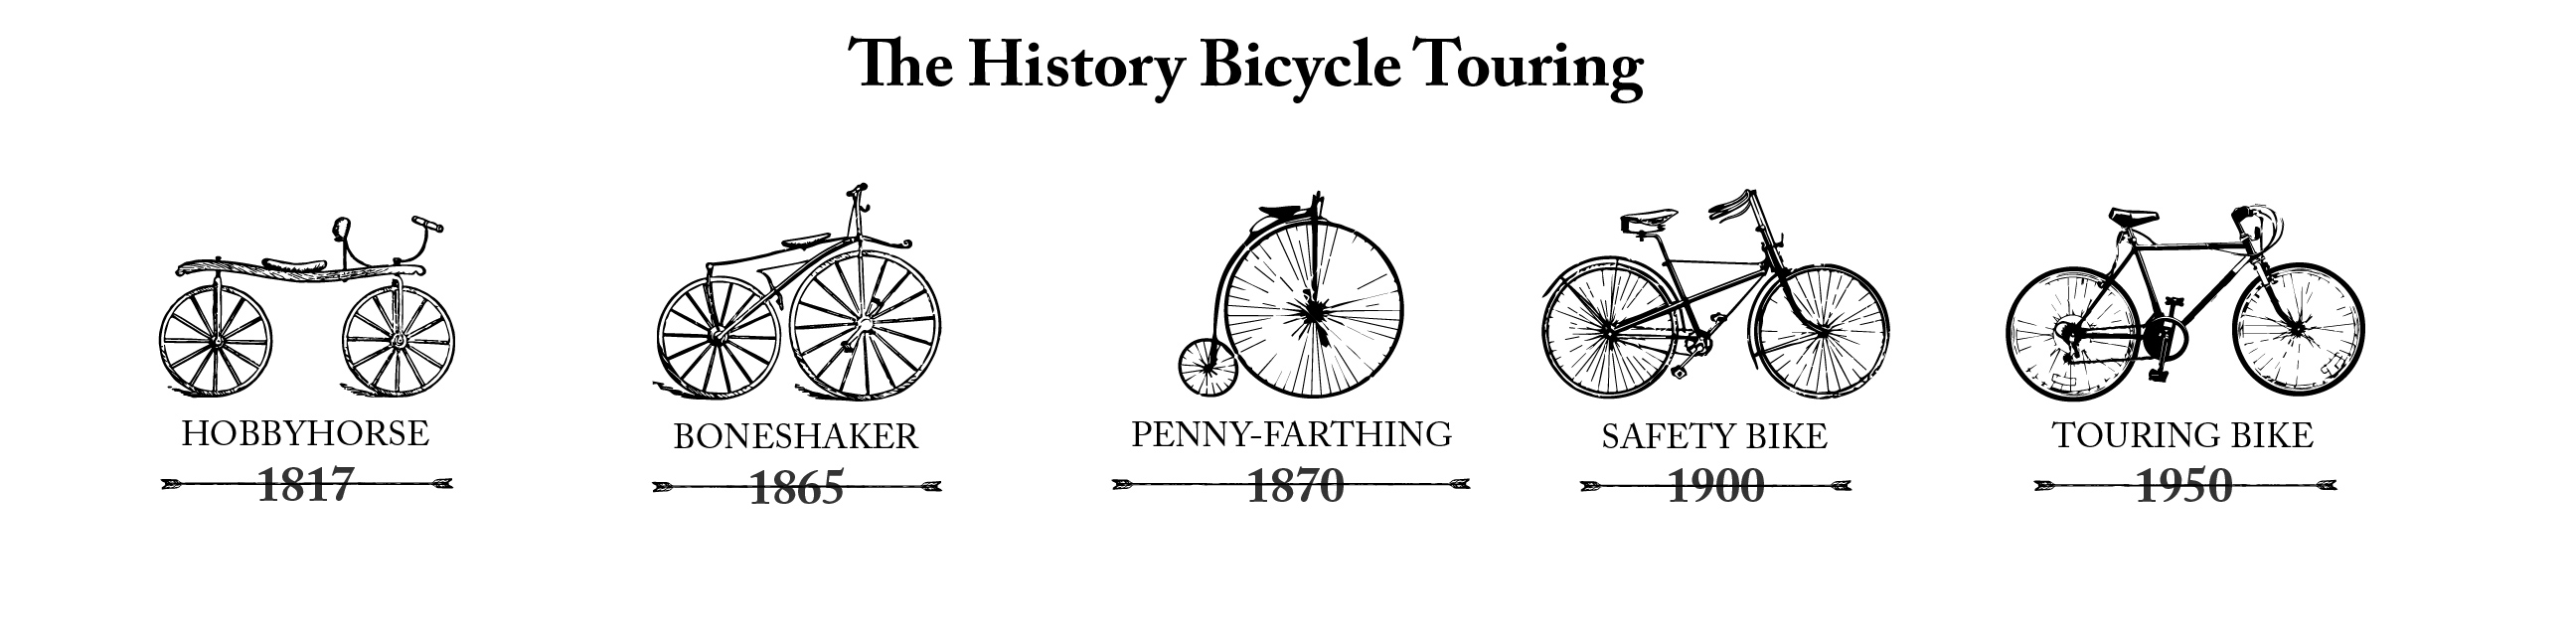 Bike History Timeline Invention of the Bicycle by